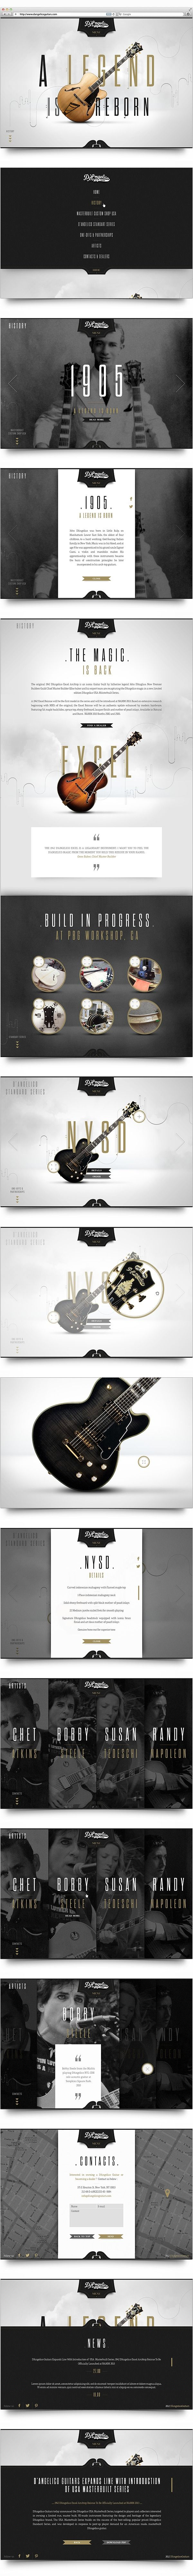 UI, UX, Website, App / D'Angelico Guitars on Behance